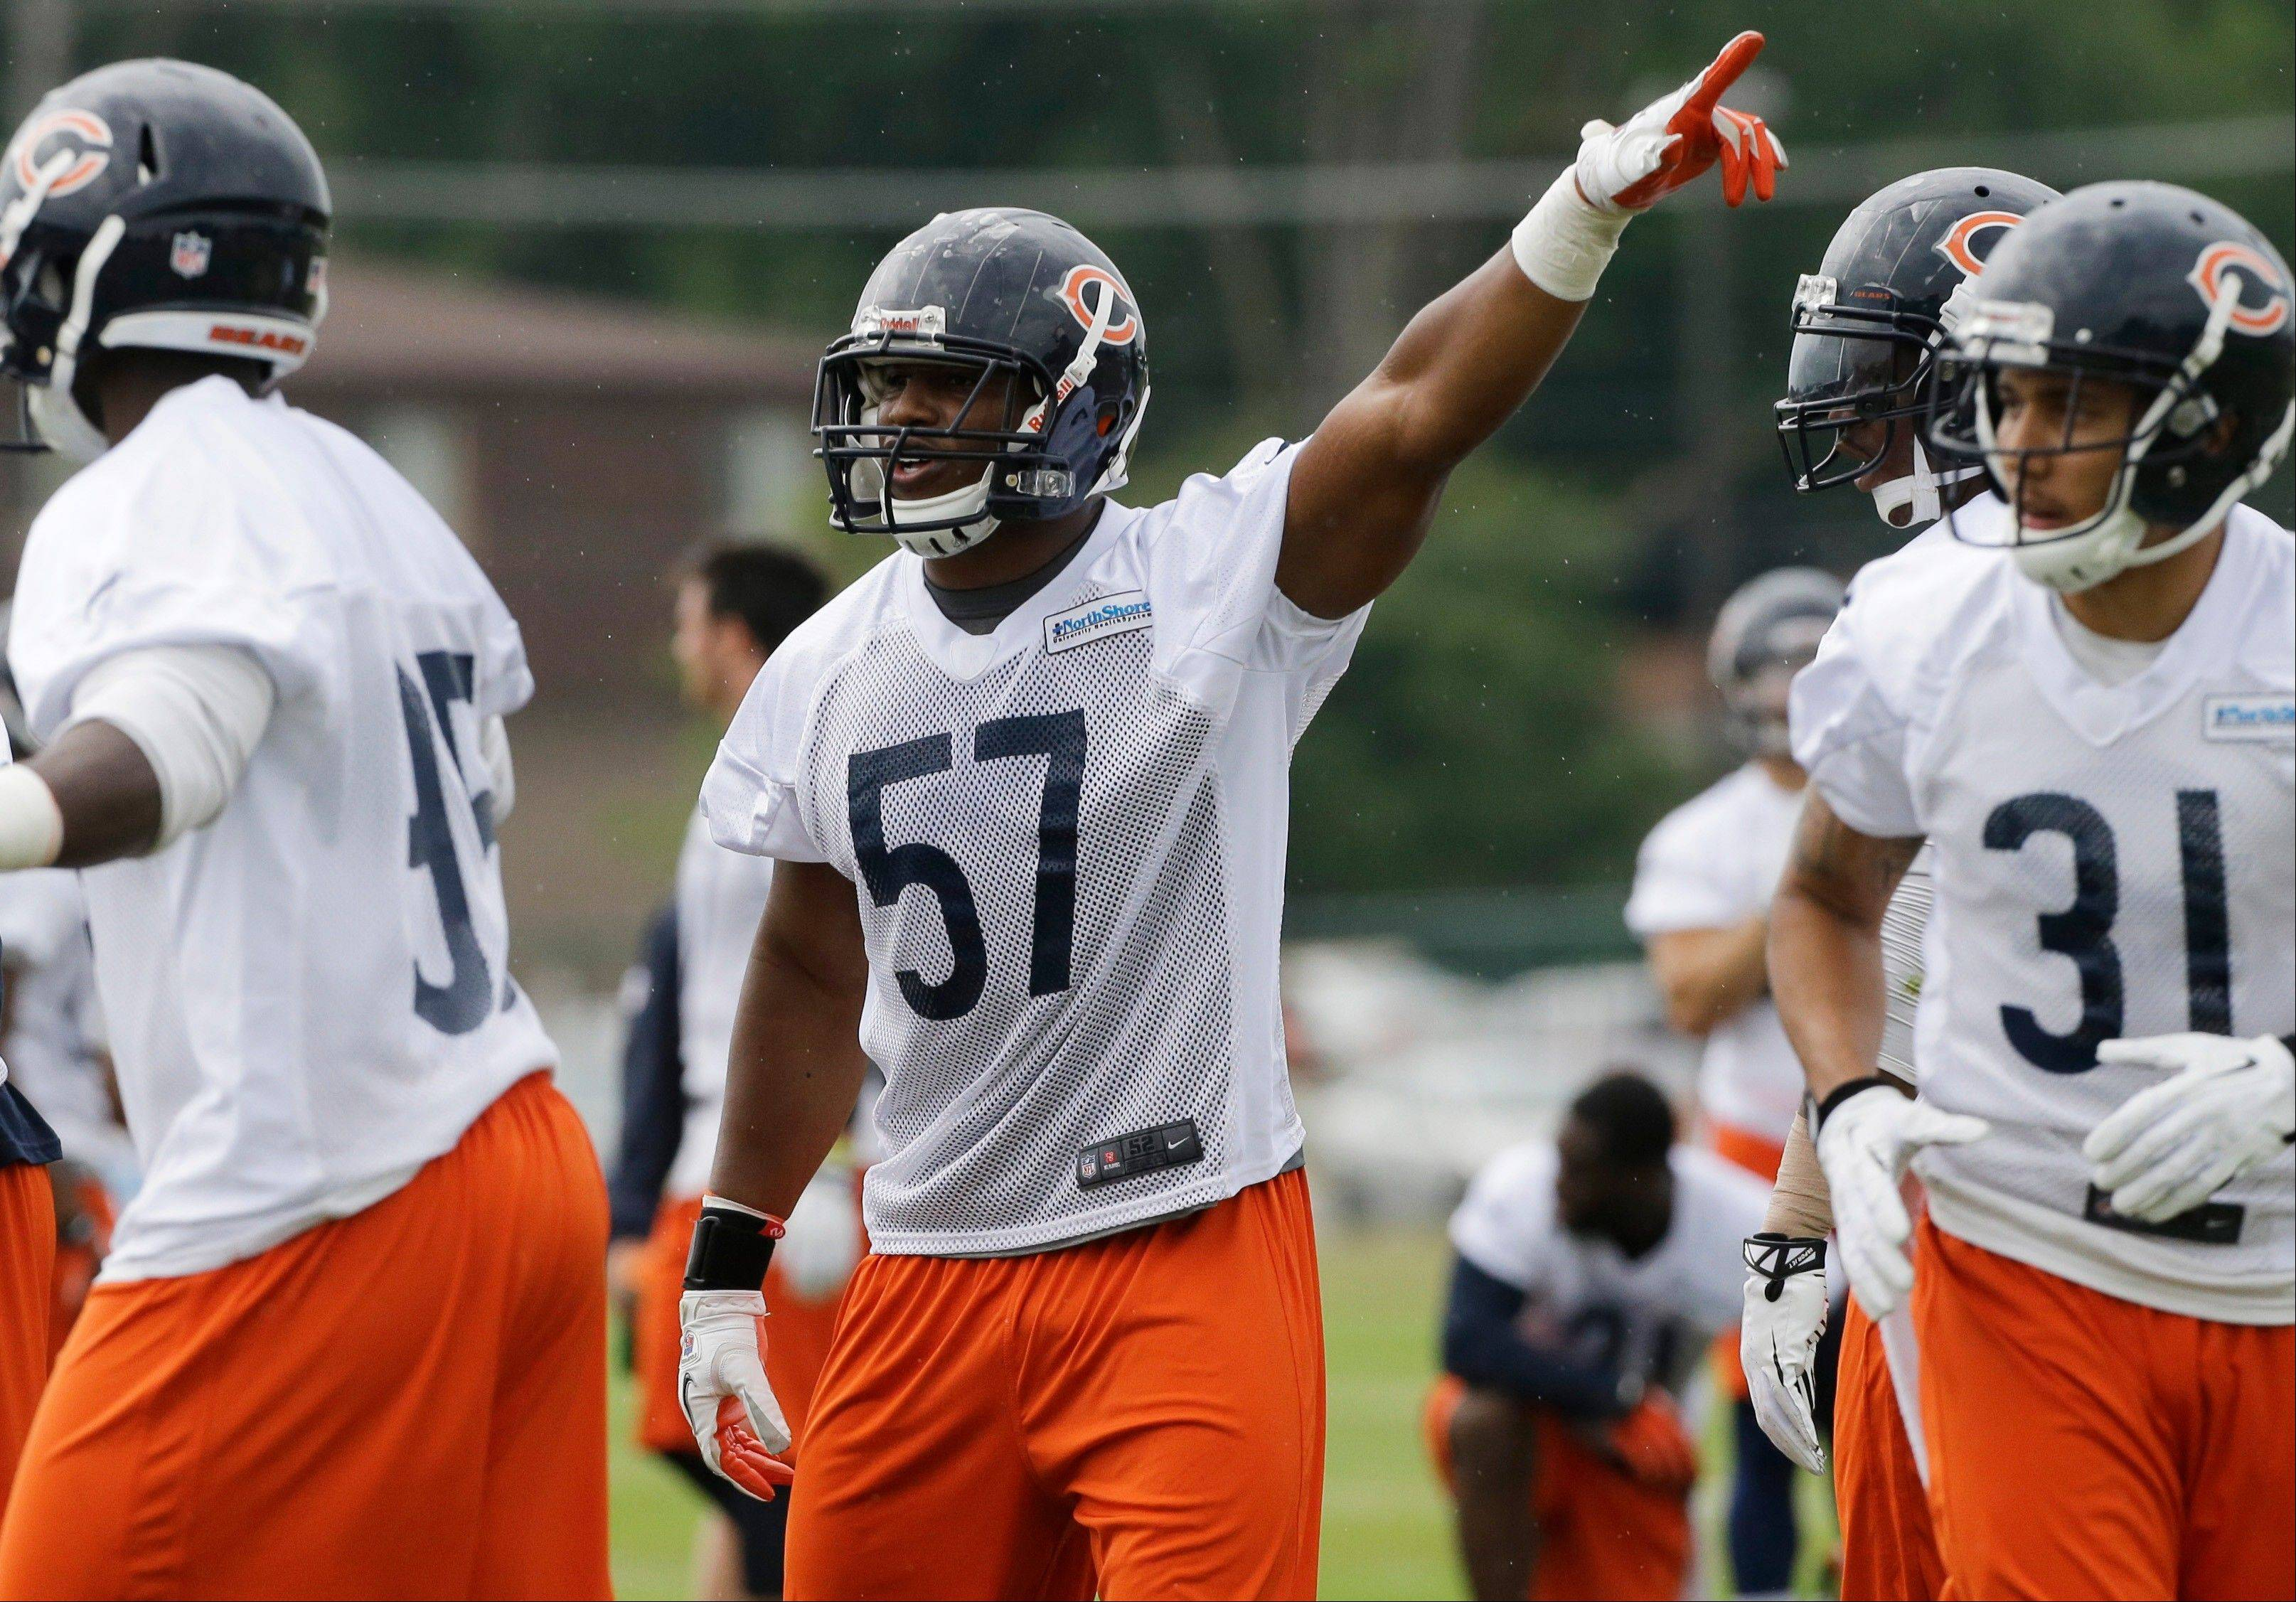 Chicago Bears linebacker Jonathan Bostic points as he talks to teammates.